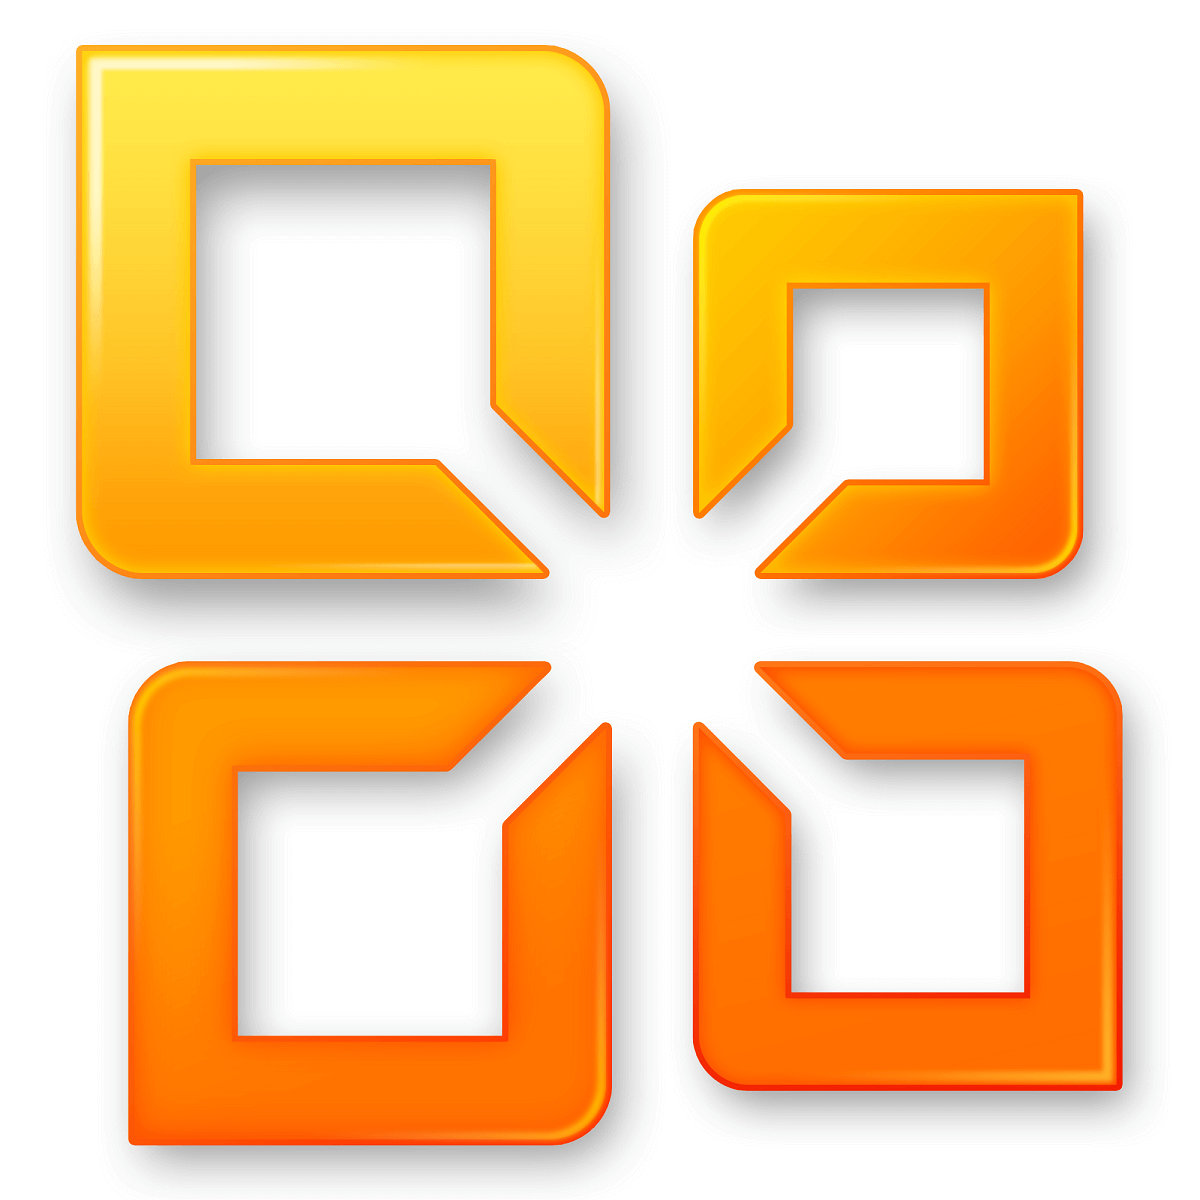 How to run Microsoft Office Picture Manager on Windows 10 [QUICK GUIDE] 1